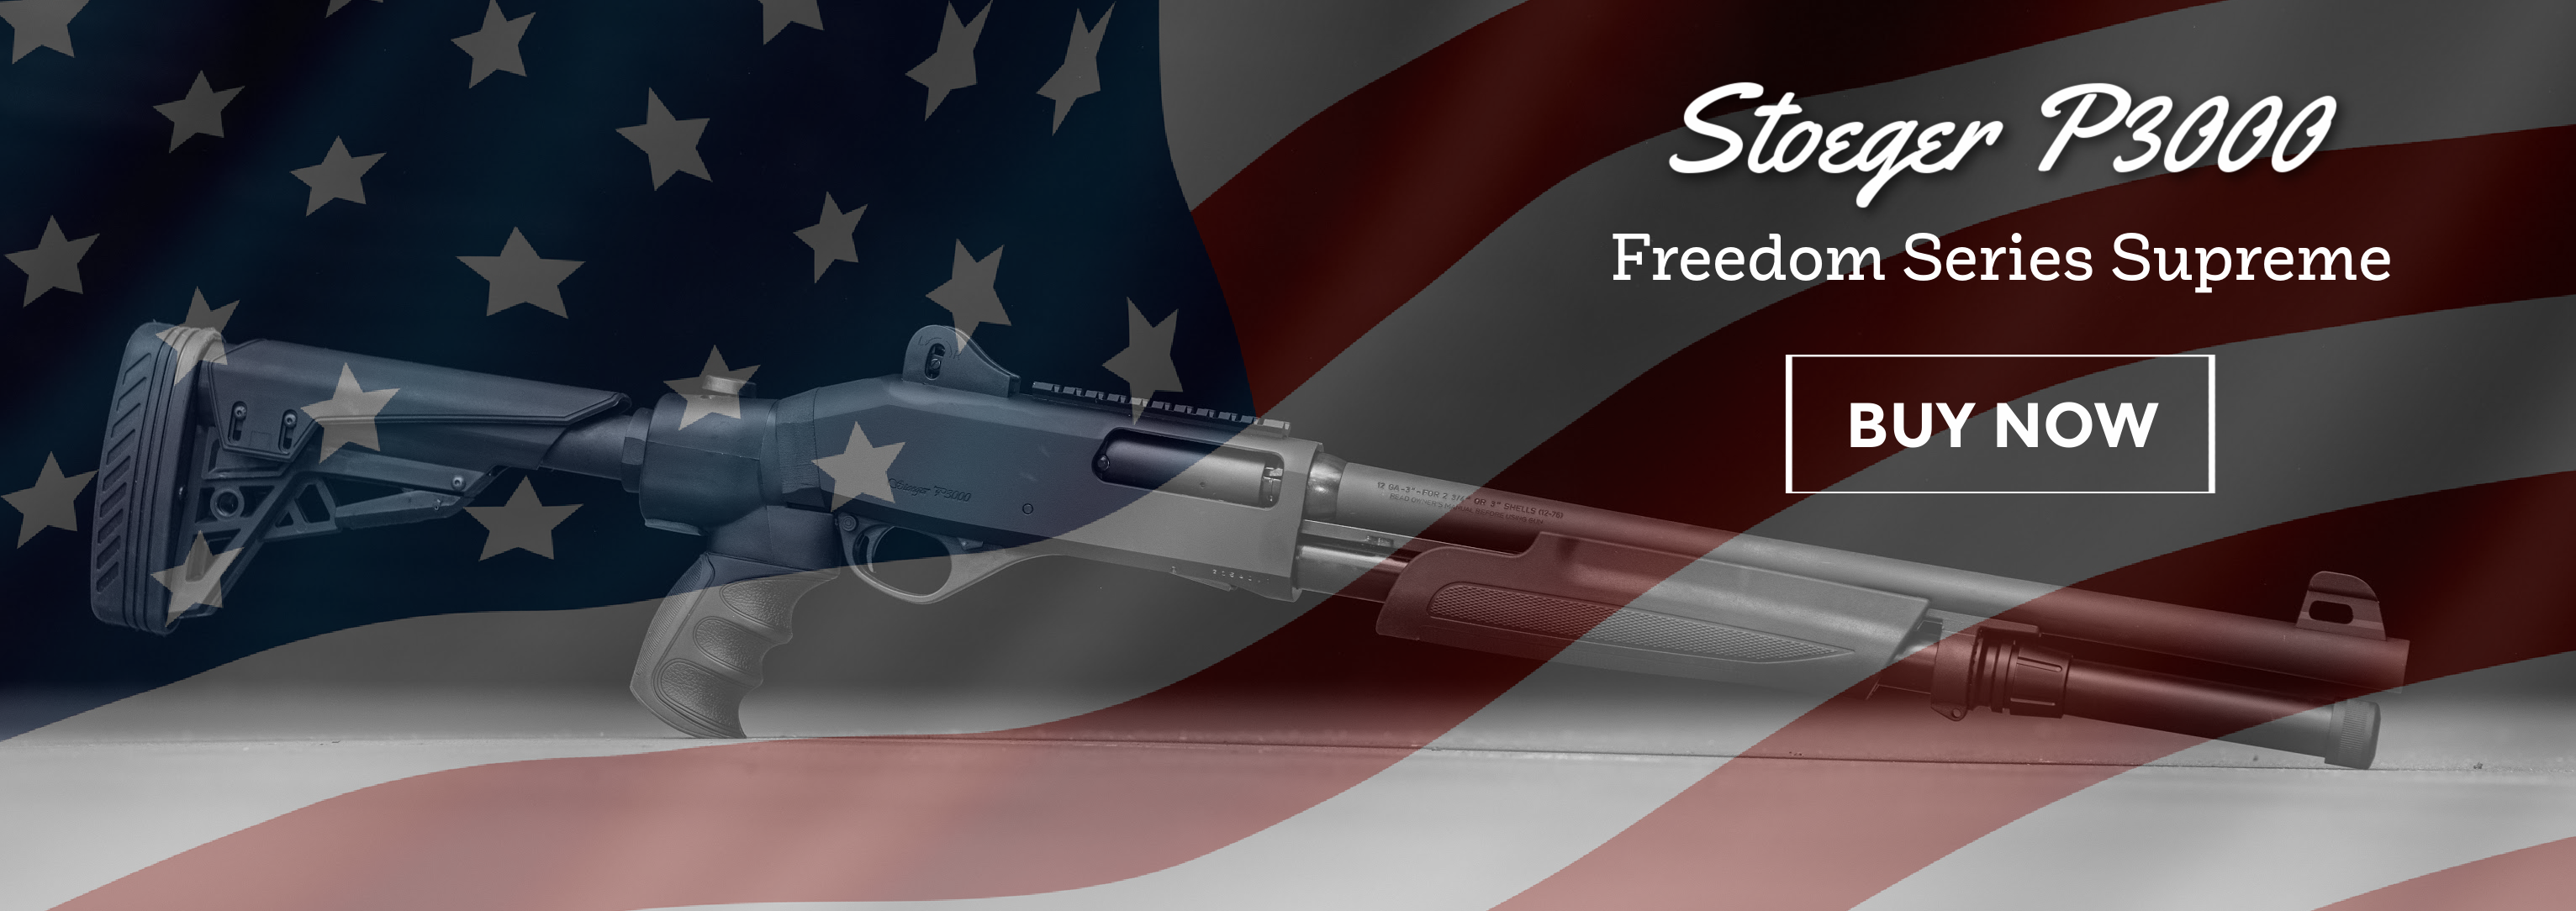 https://store.readygunner.com/products/stoeger-31894fs-037084961859-101-24563-3413-9f36b2f1-34c2-4ba8-a943-65e1c567a54e